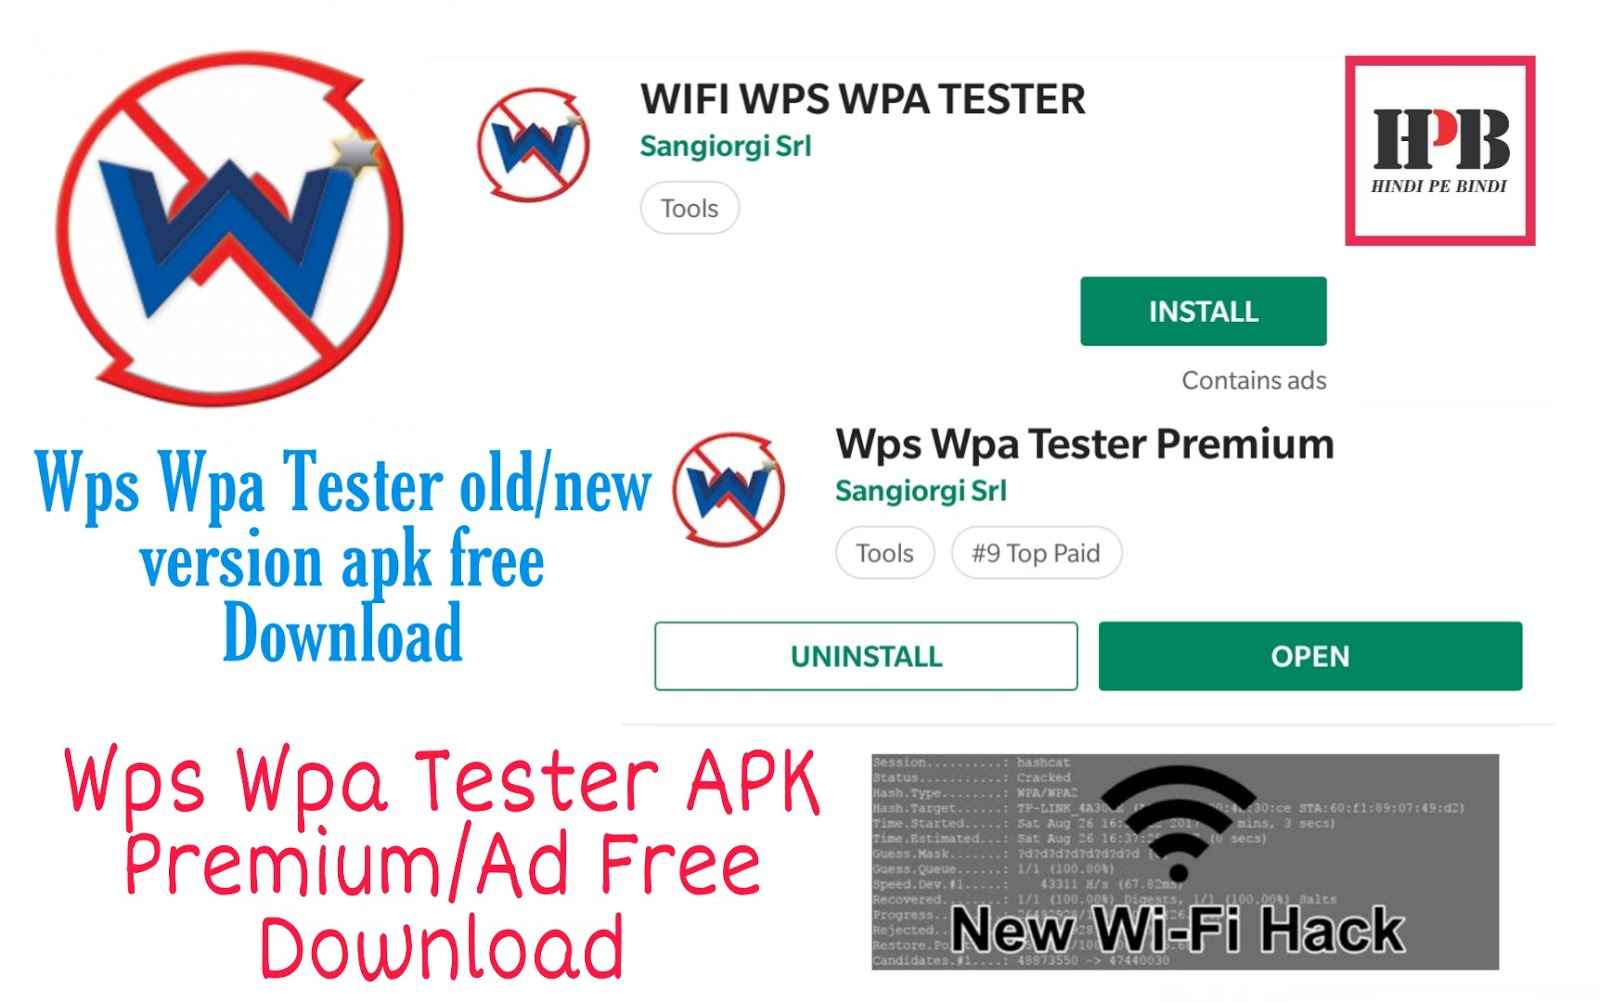 Wps Wpa Tester old/new version apk free Download|Wps Wpa